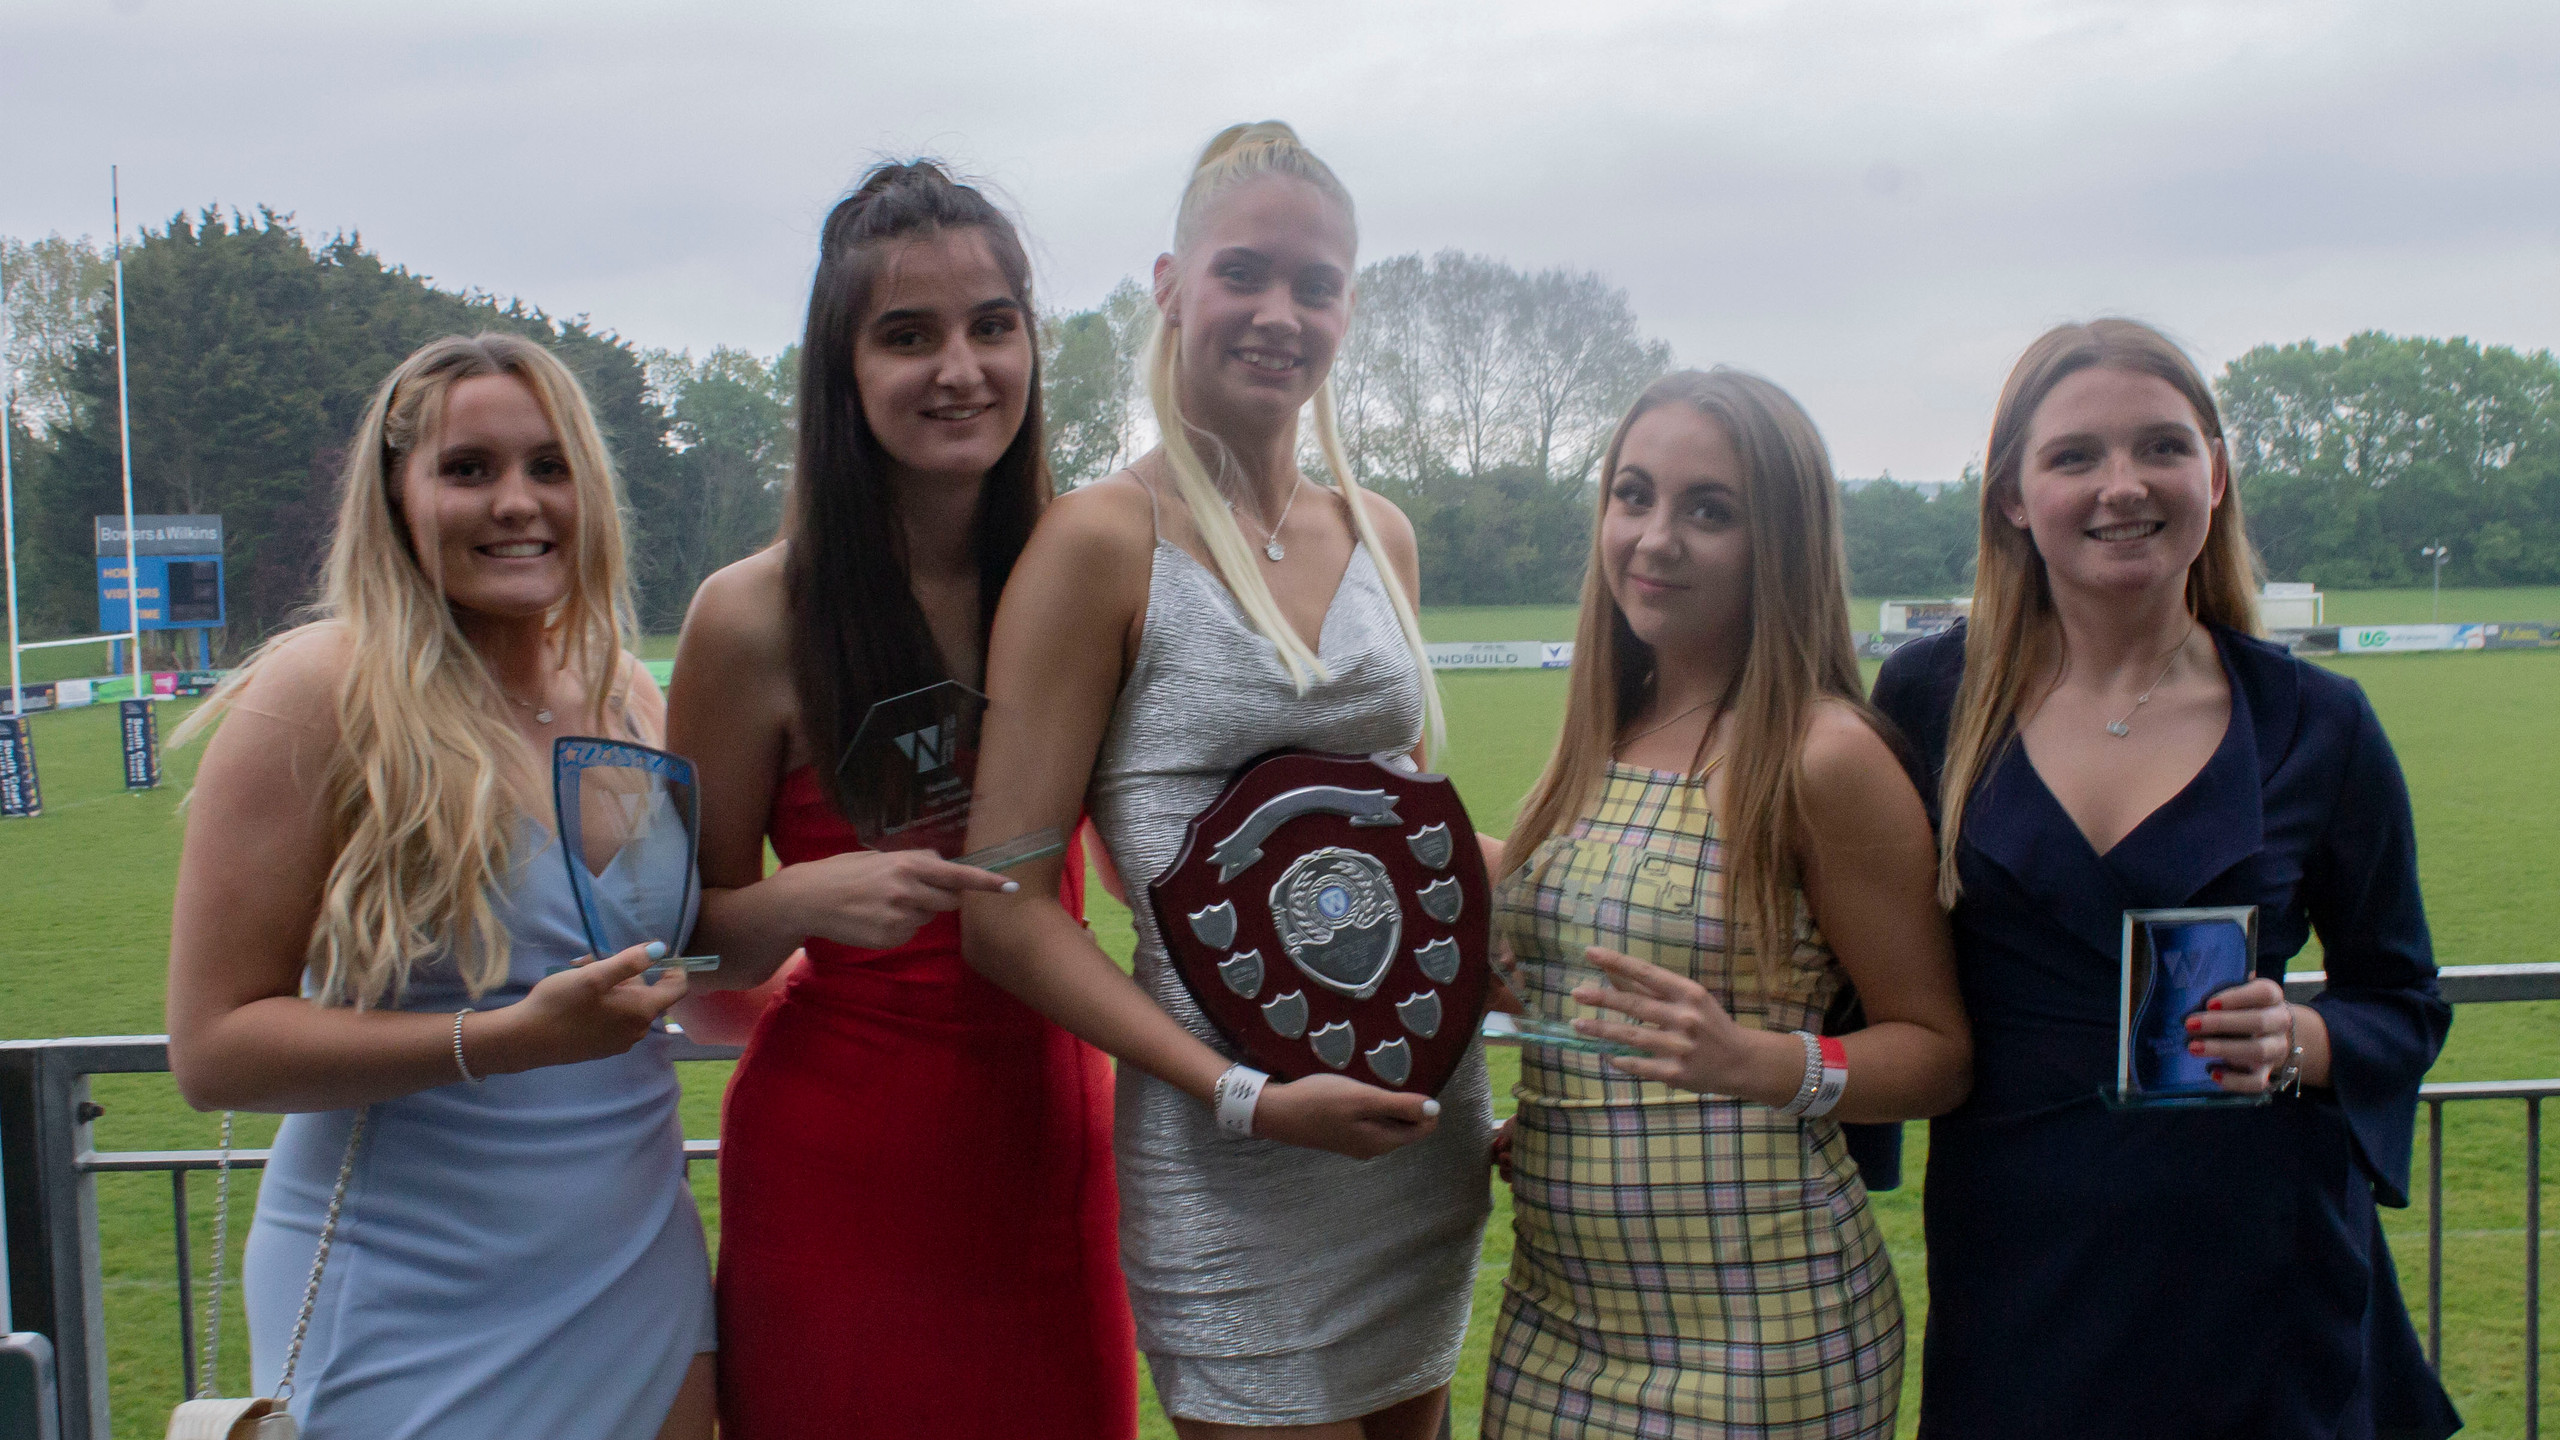 Sports Awards - Netball Team